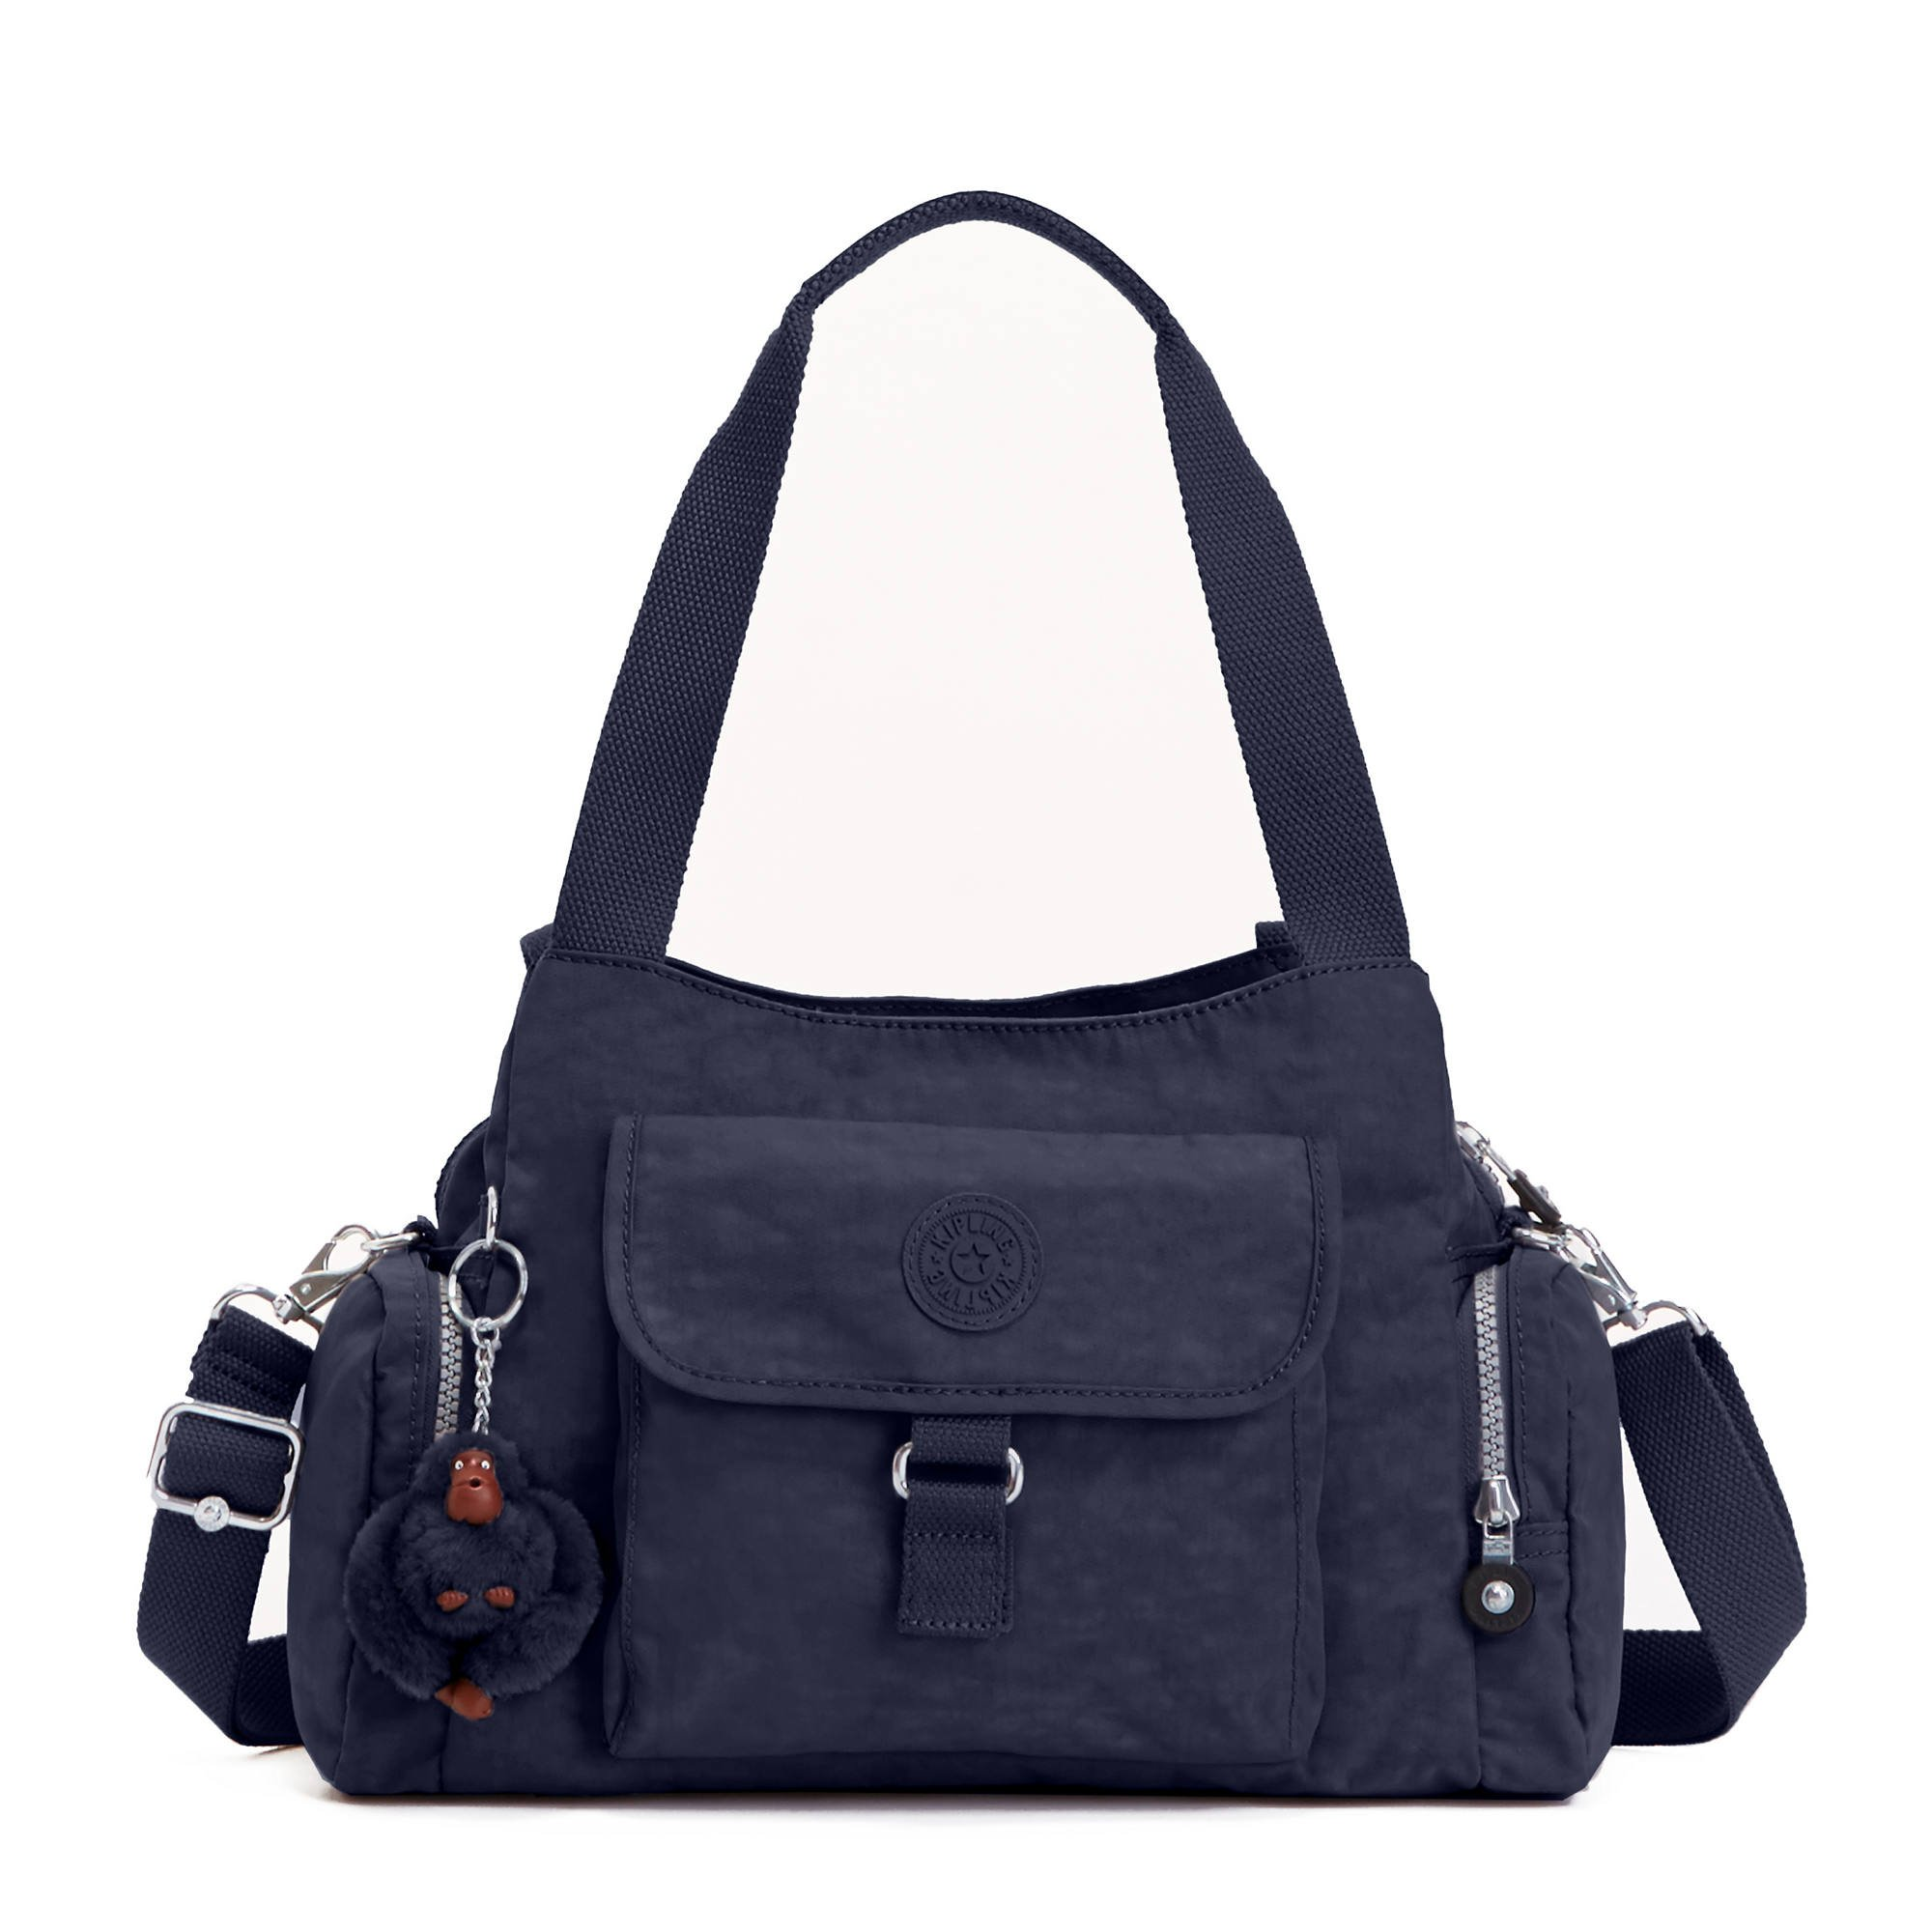 Kipling Luggage Fairfax Shoulder Bag with Removable Strap, True Blue, One Size